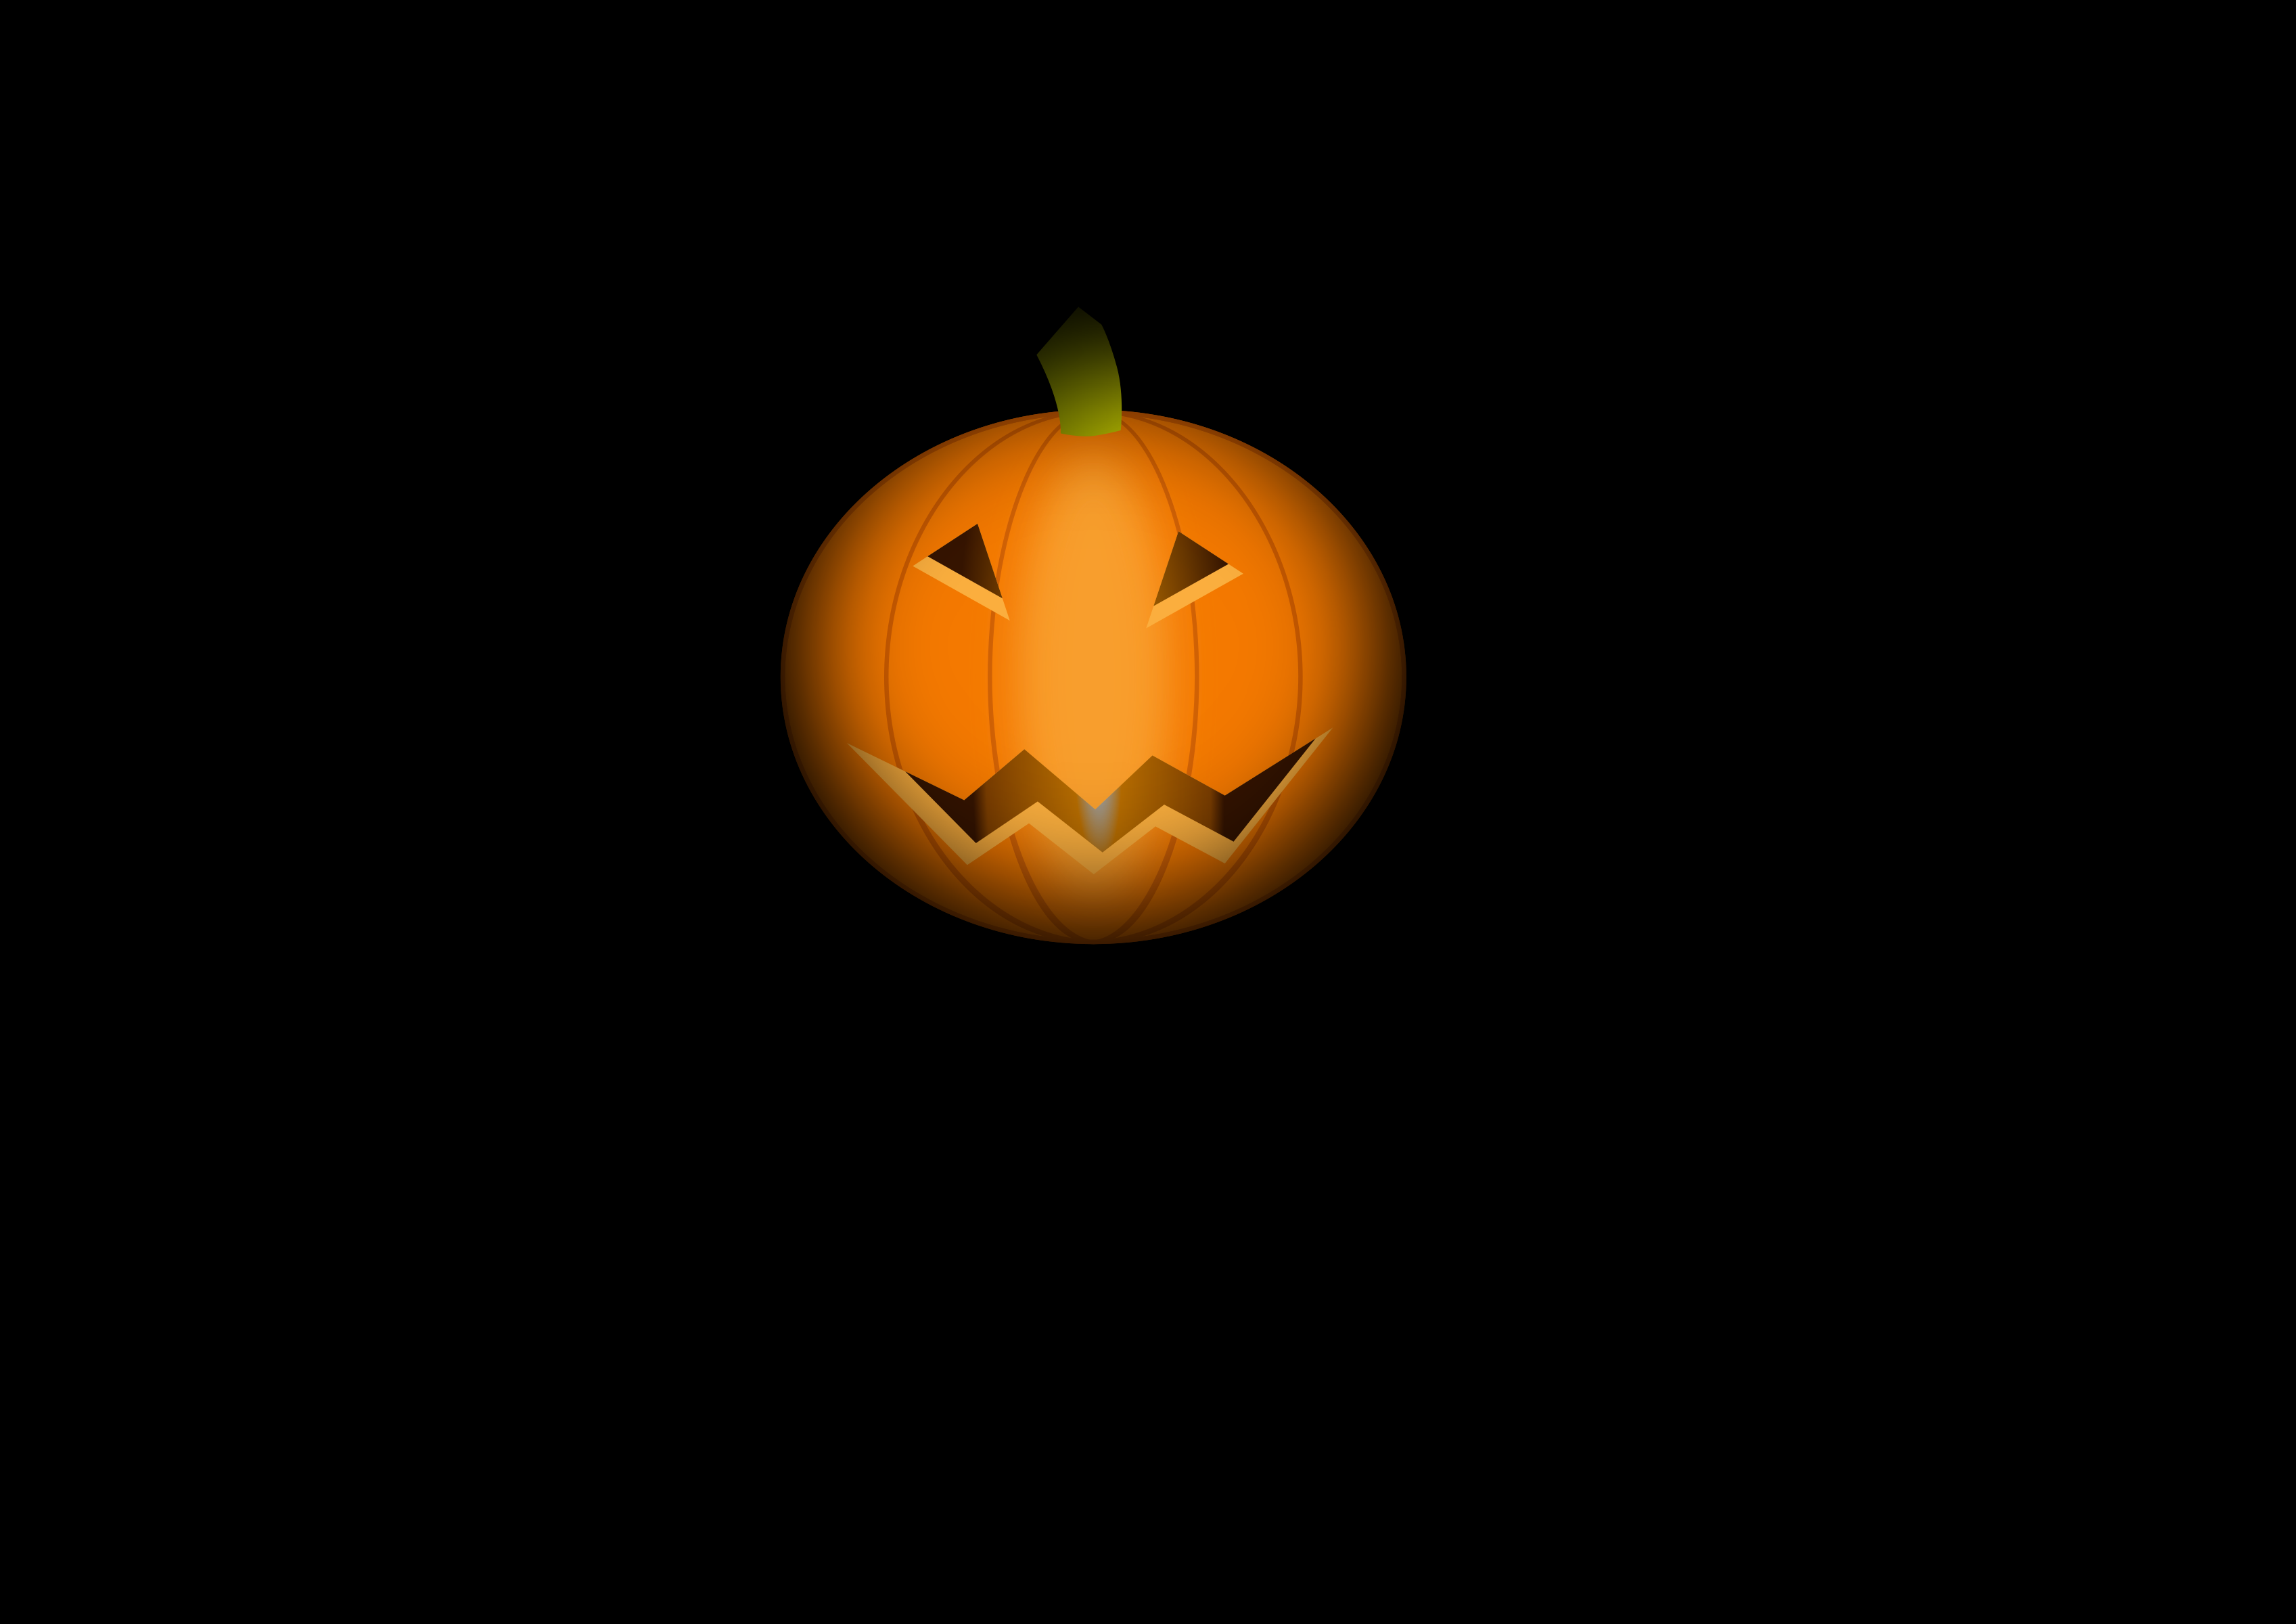 Helloween pumpkin by helour